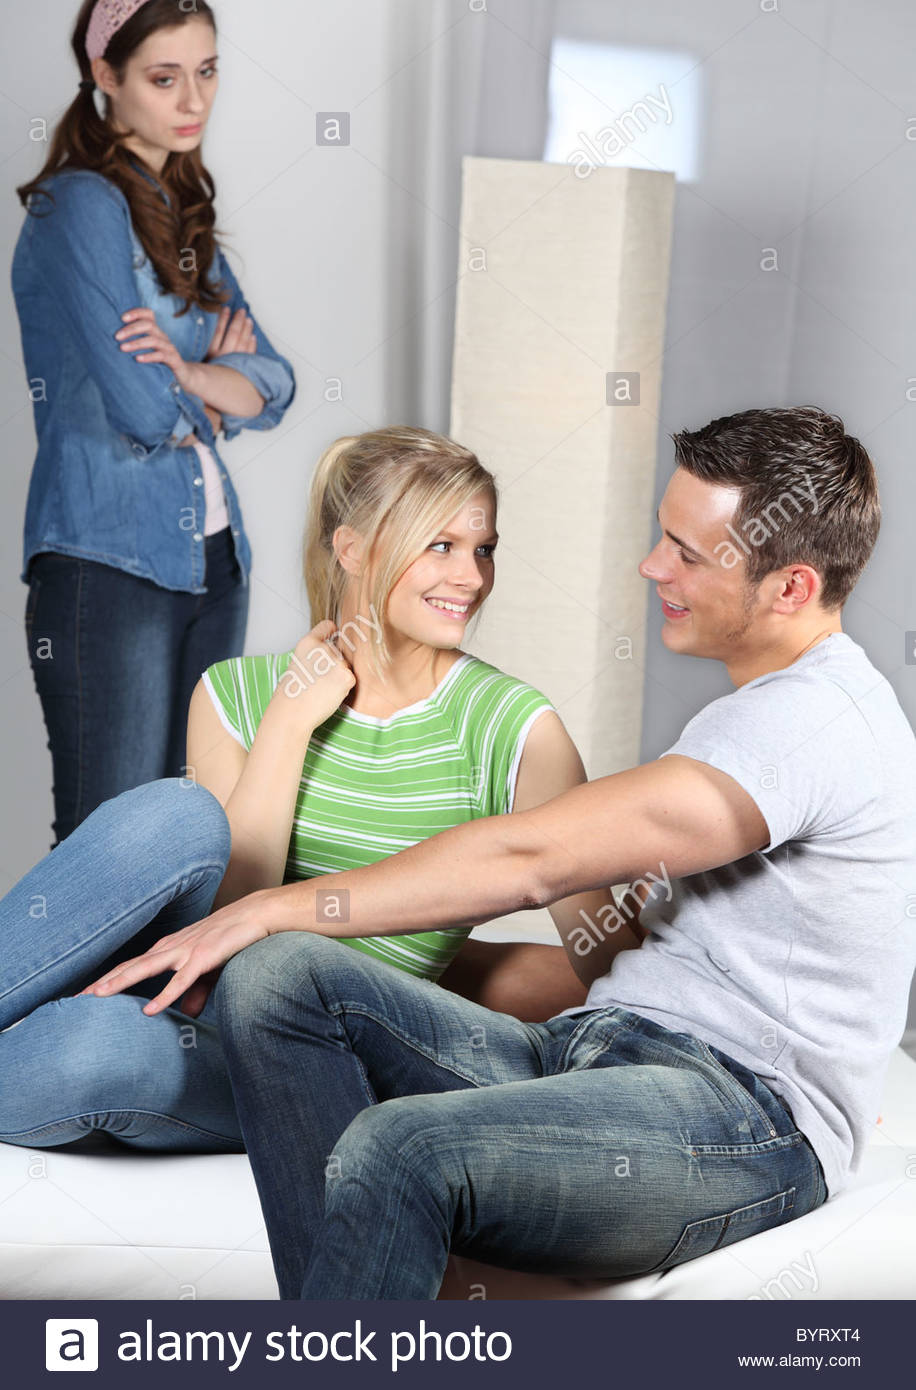 jealous woman looking at a couple - Stock Image